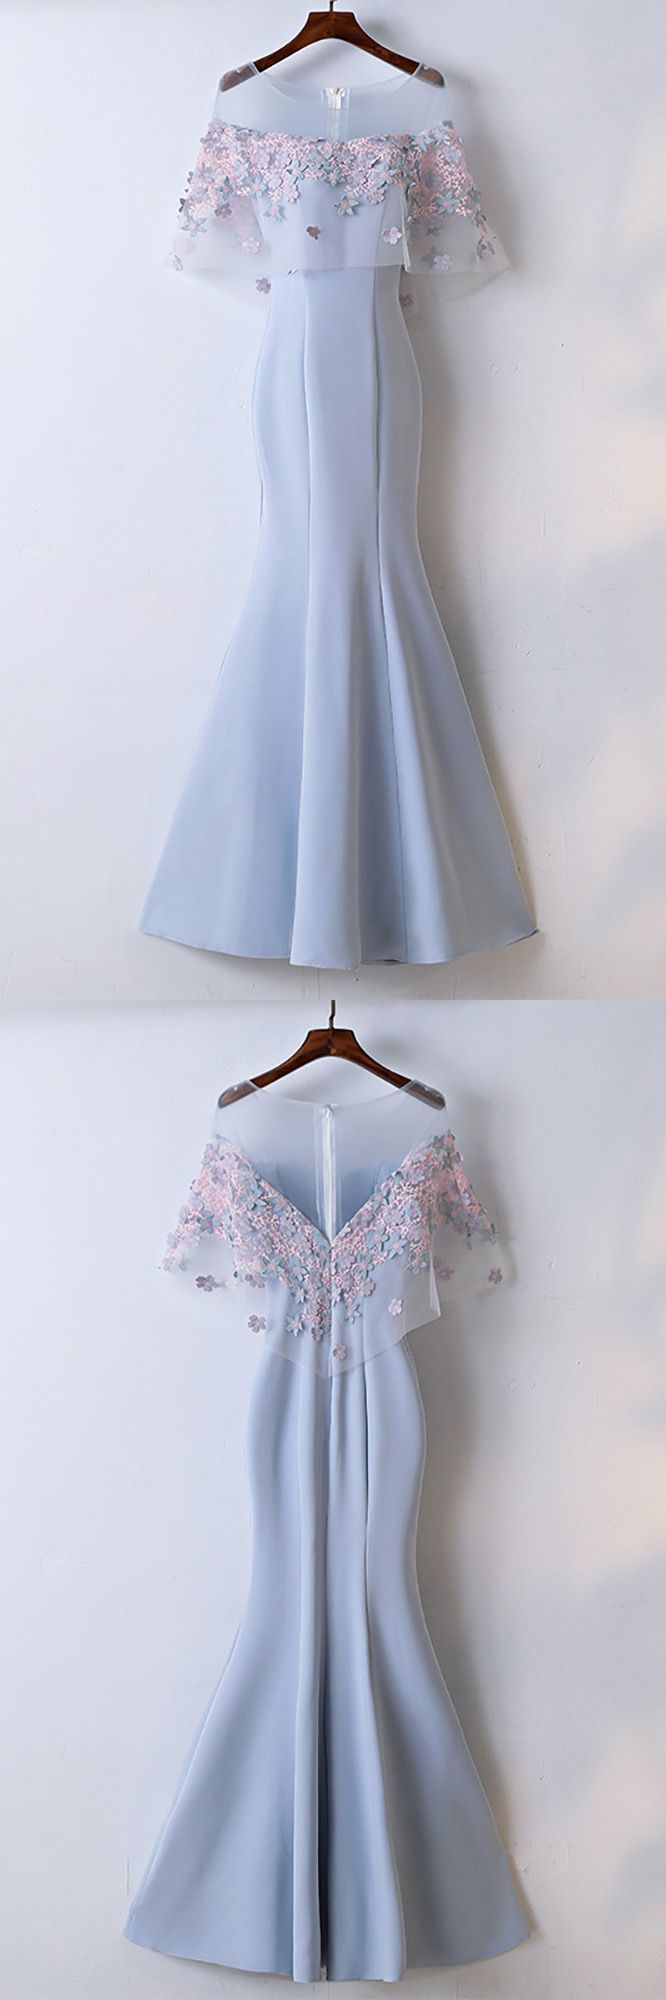 2 piece white lace dress may 2019  best Dresses images on Pinterest